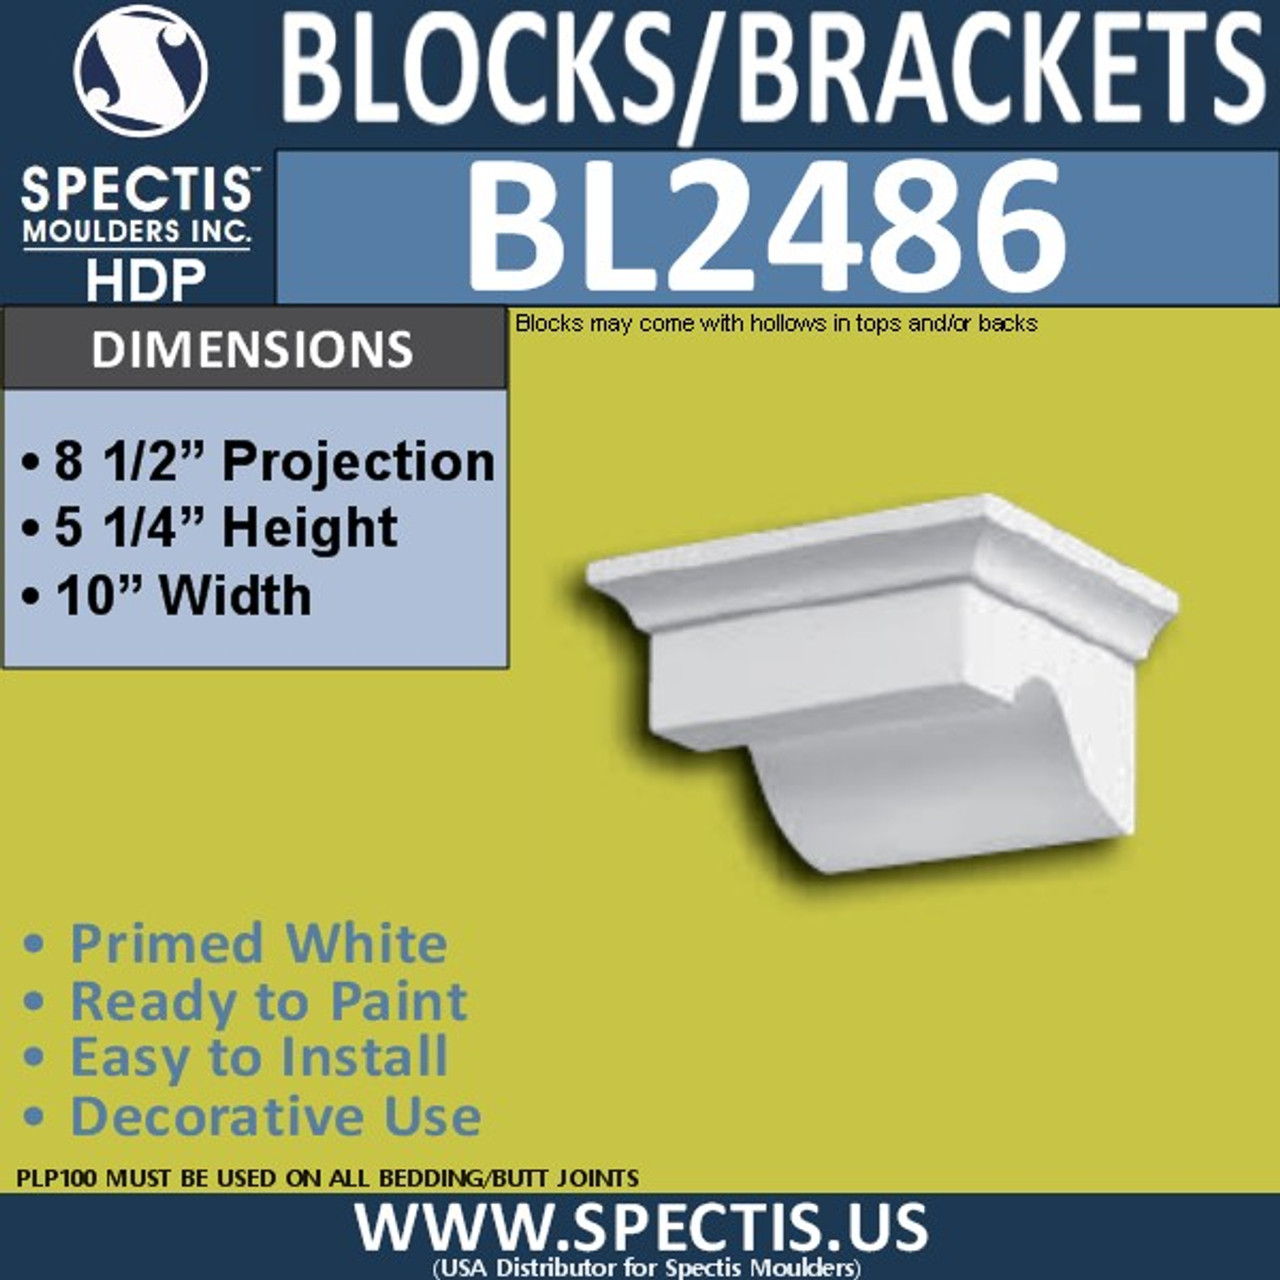 "BL2486 Eave Block or Bracket 10""W x 5.25""H x 8.5"" P"